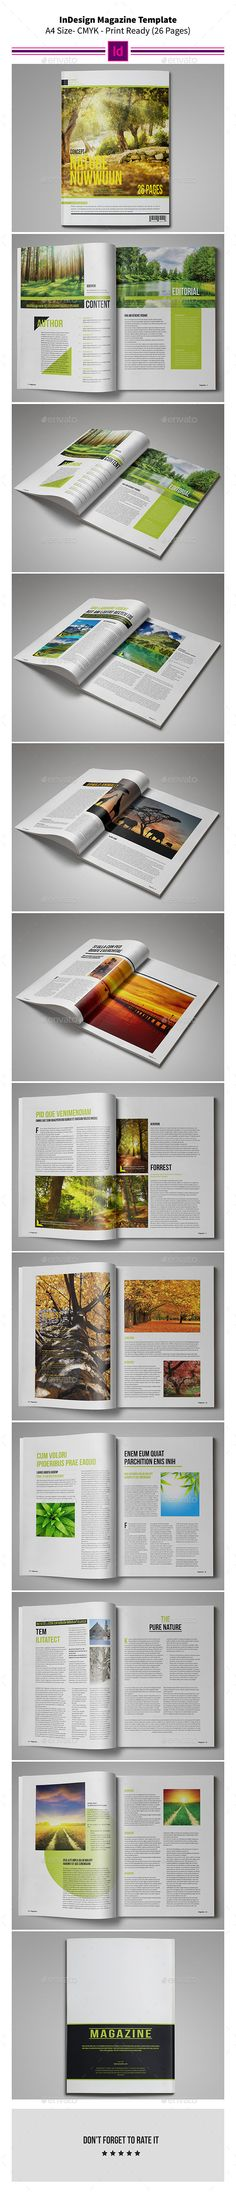 Nature MagazineTemplate 26 Pages - #Magazines Print #Templates Download here: https://graphicriver.net/item/nature-magazinetemplate-26-pages/9362533?ref=alena994